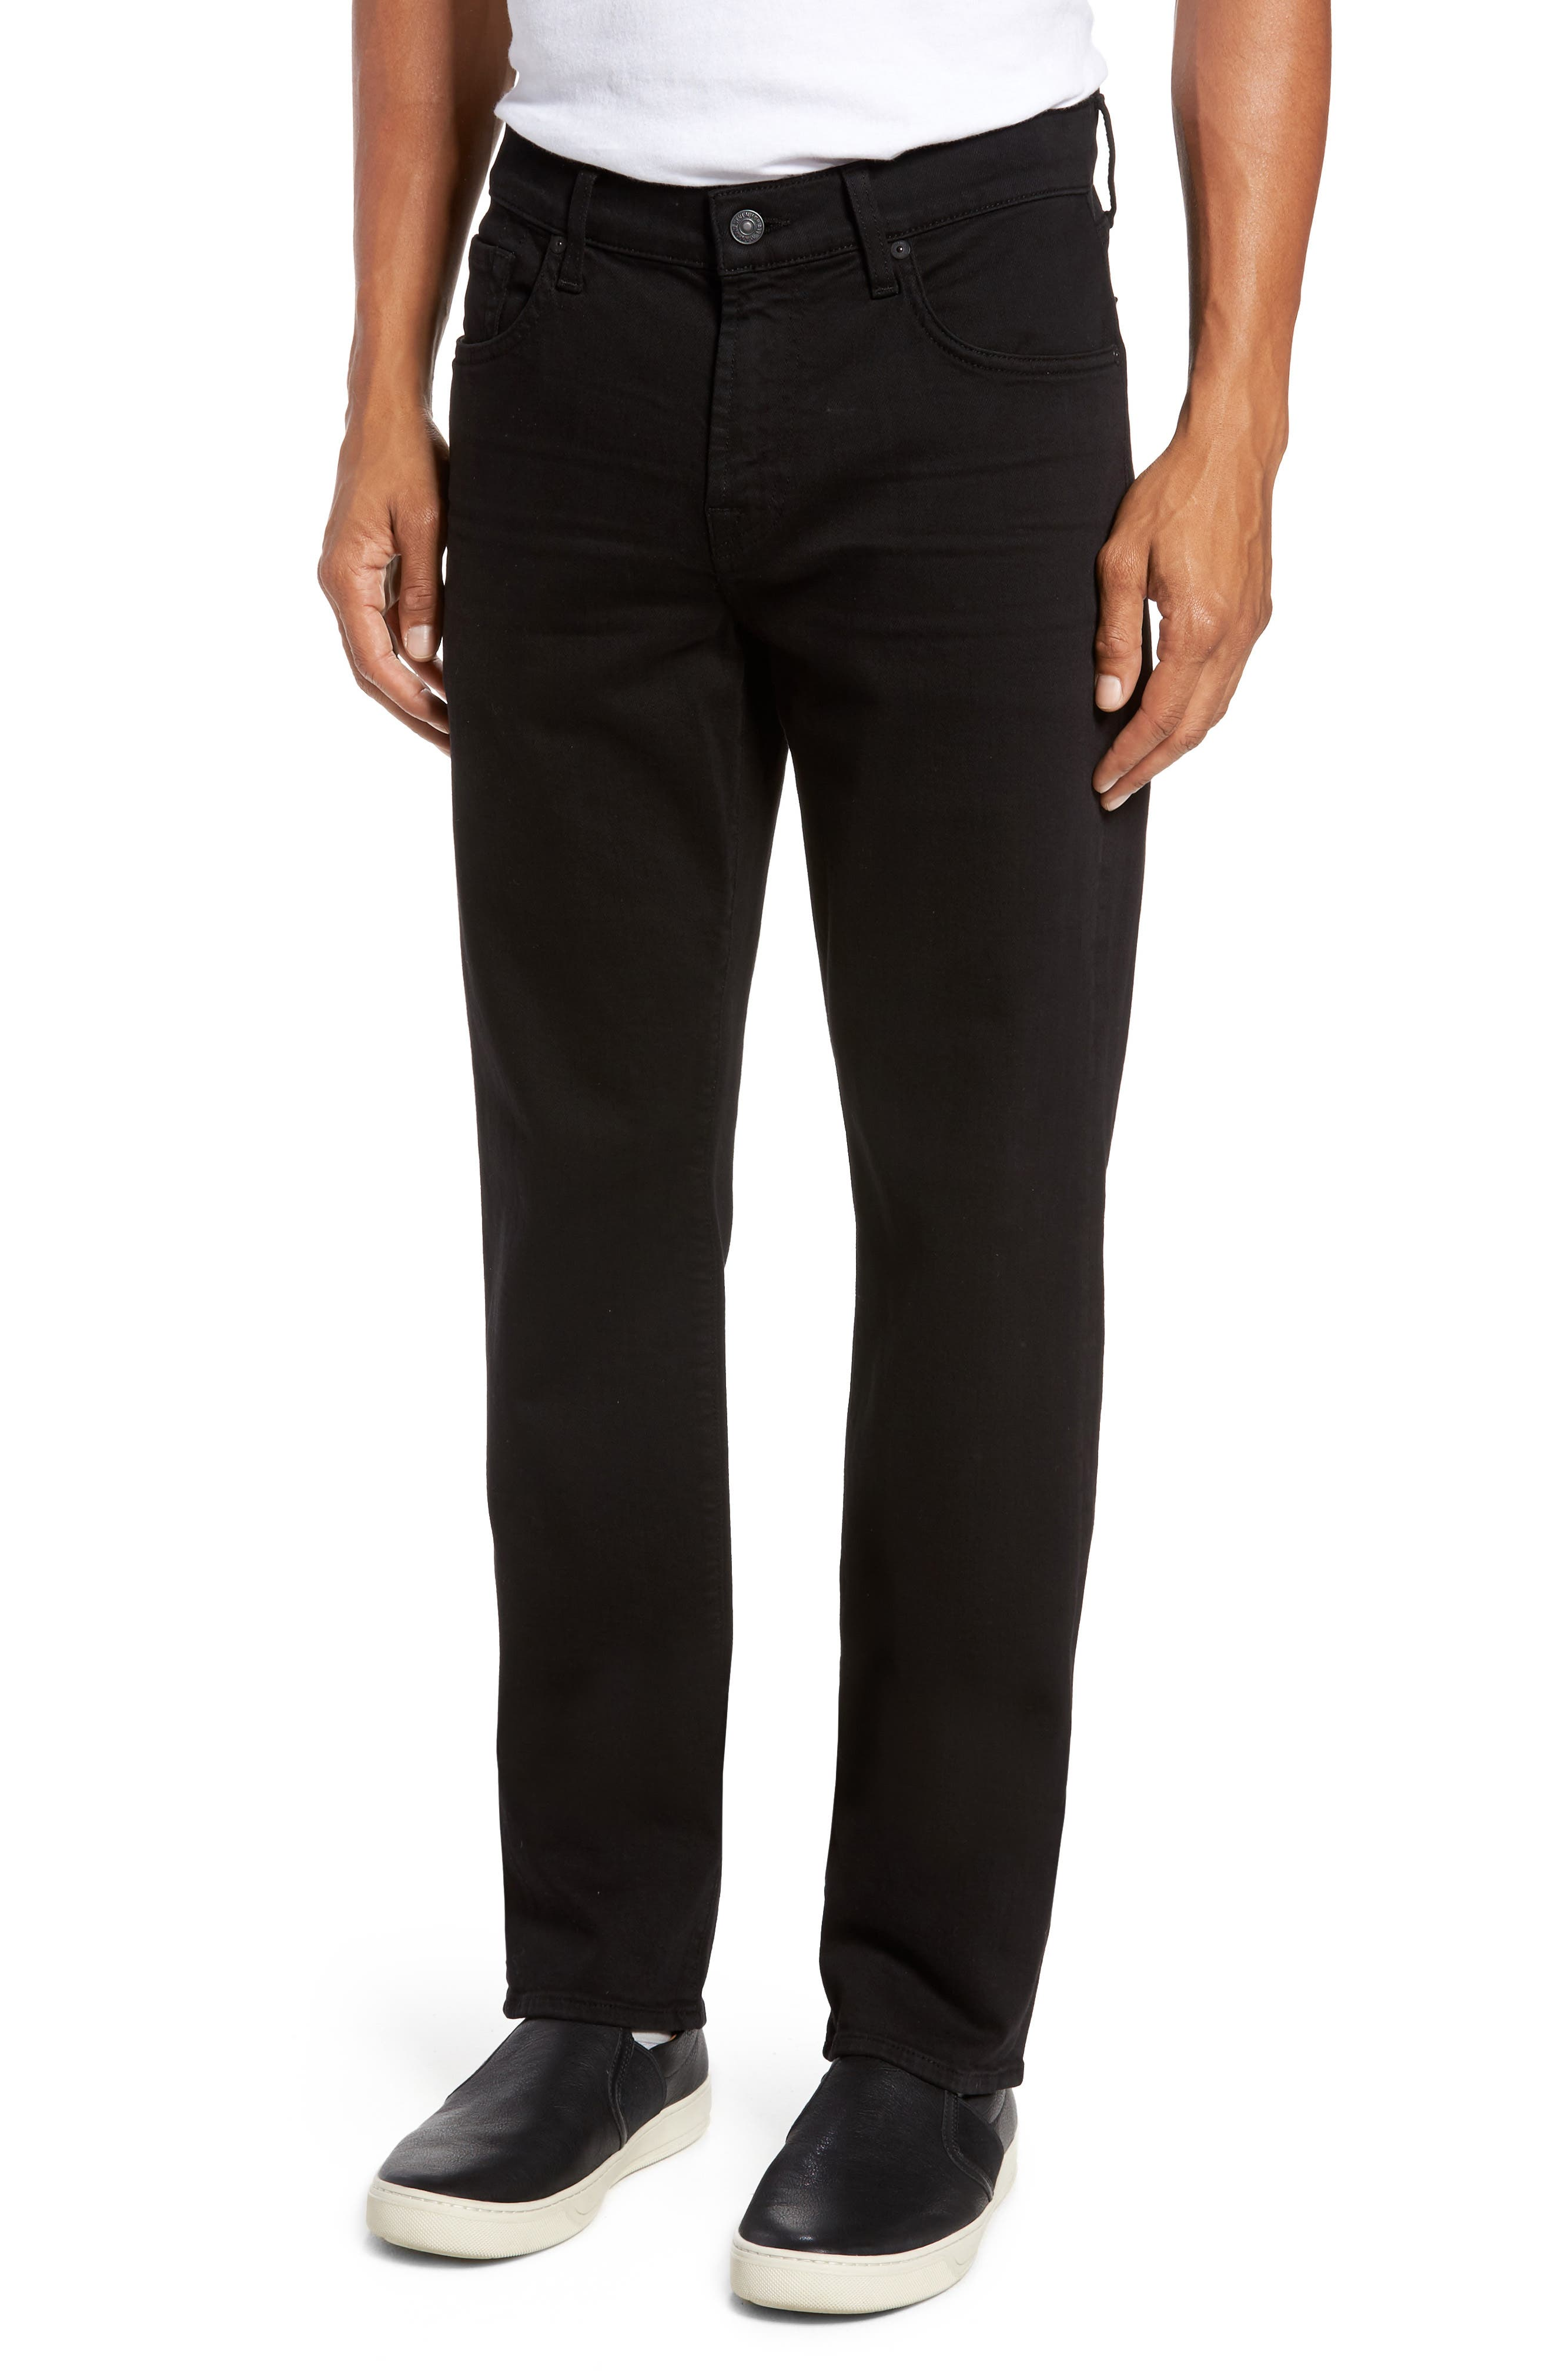 Main Image - 7 For All Mankind® Luxe Performance - Slimmy Slim Fit Jeans (Annex Black)